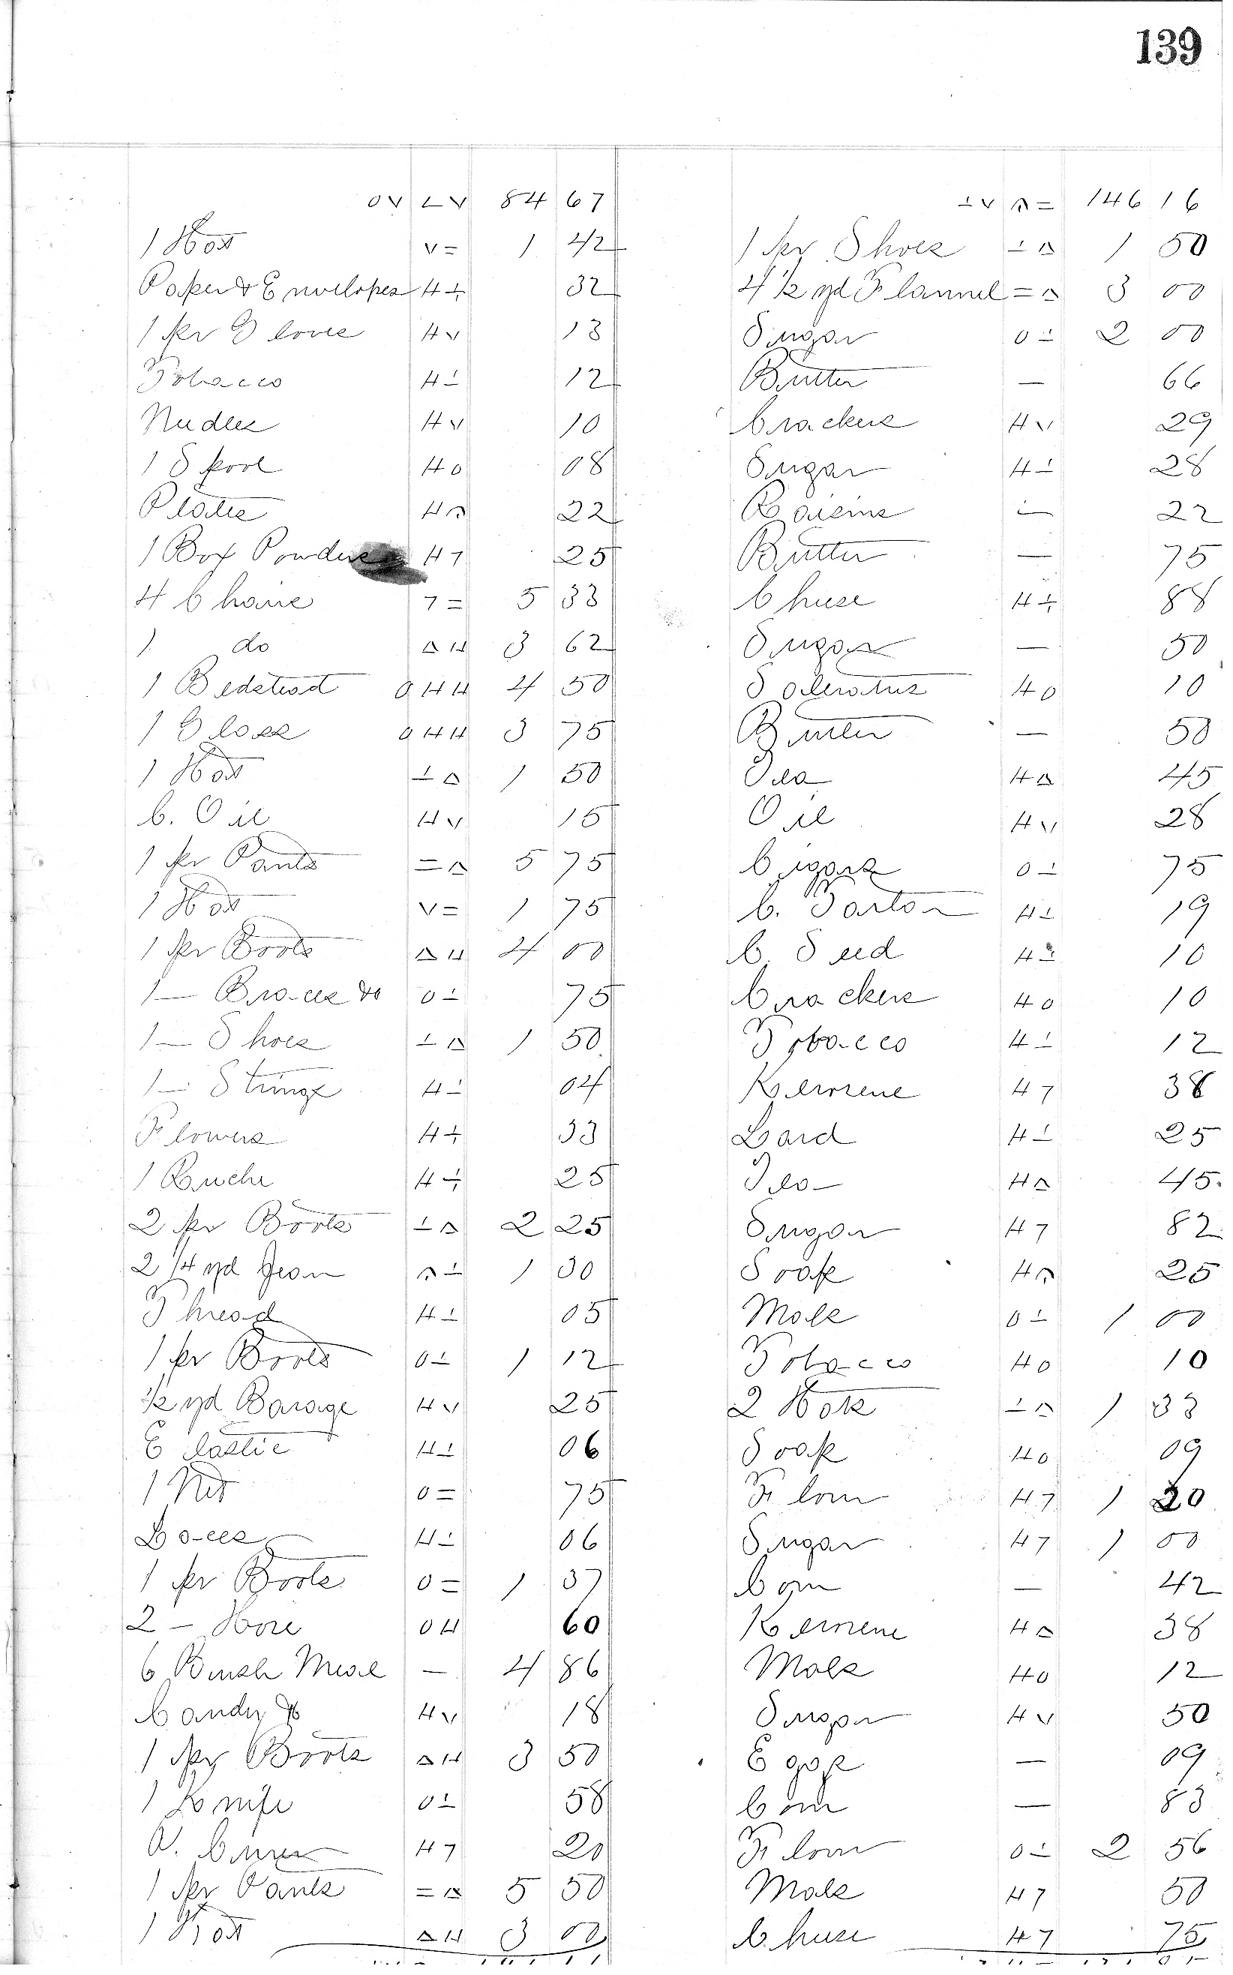 Page 139 from H.K. Keith's 1863 register of daily sales